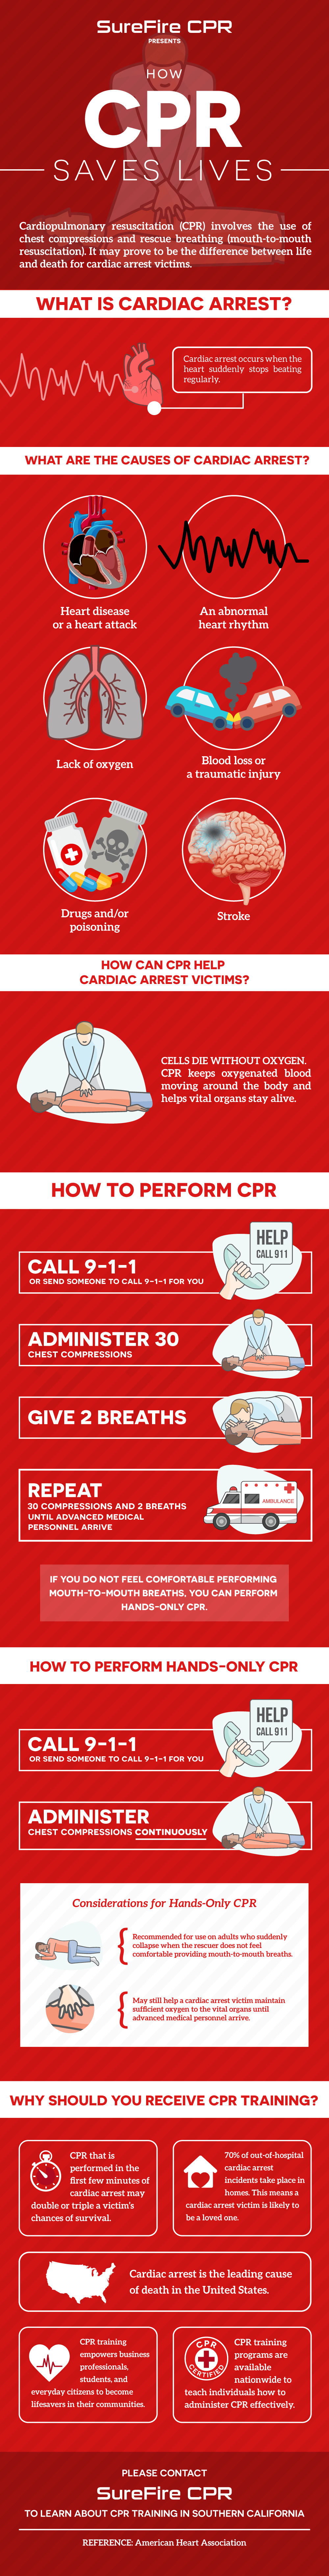 How cpr saves lives infographic surefire cpr how cpr saves lives infographic xflitez Gallery